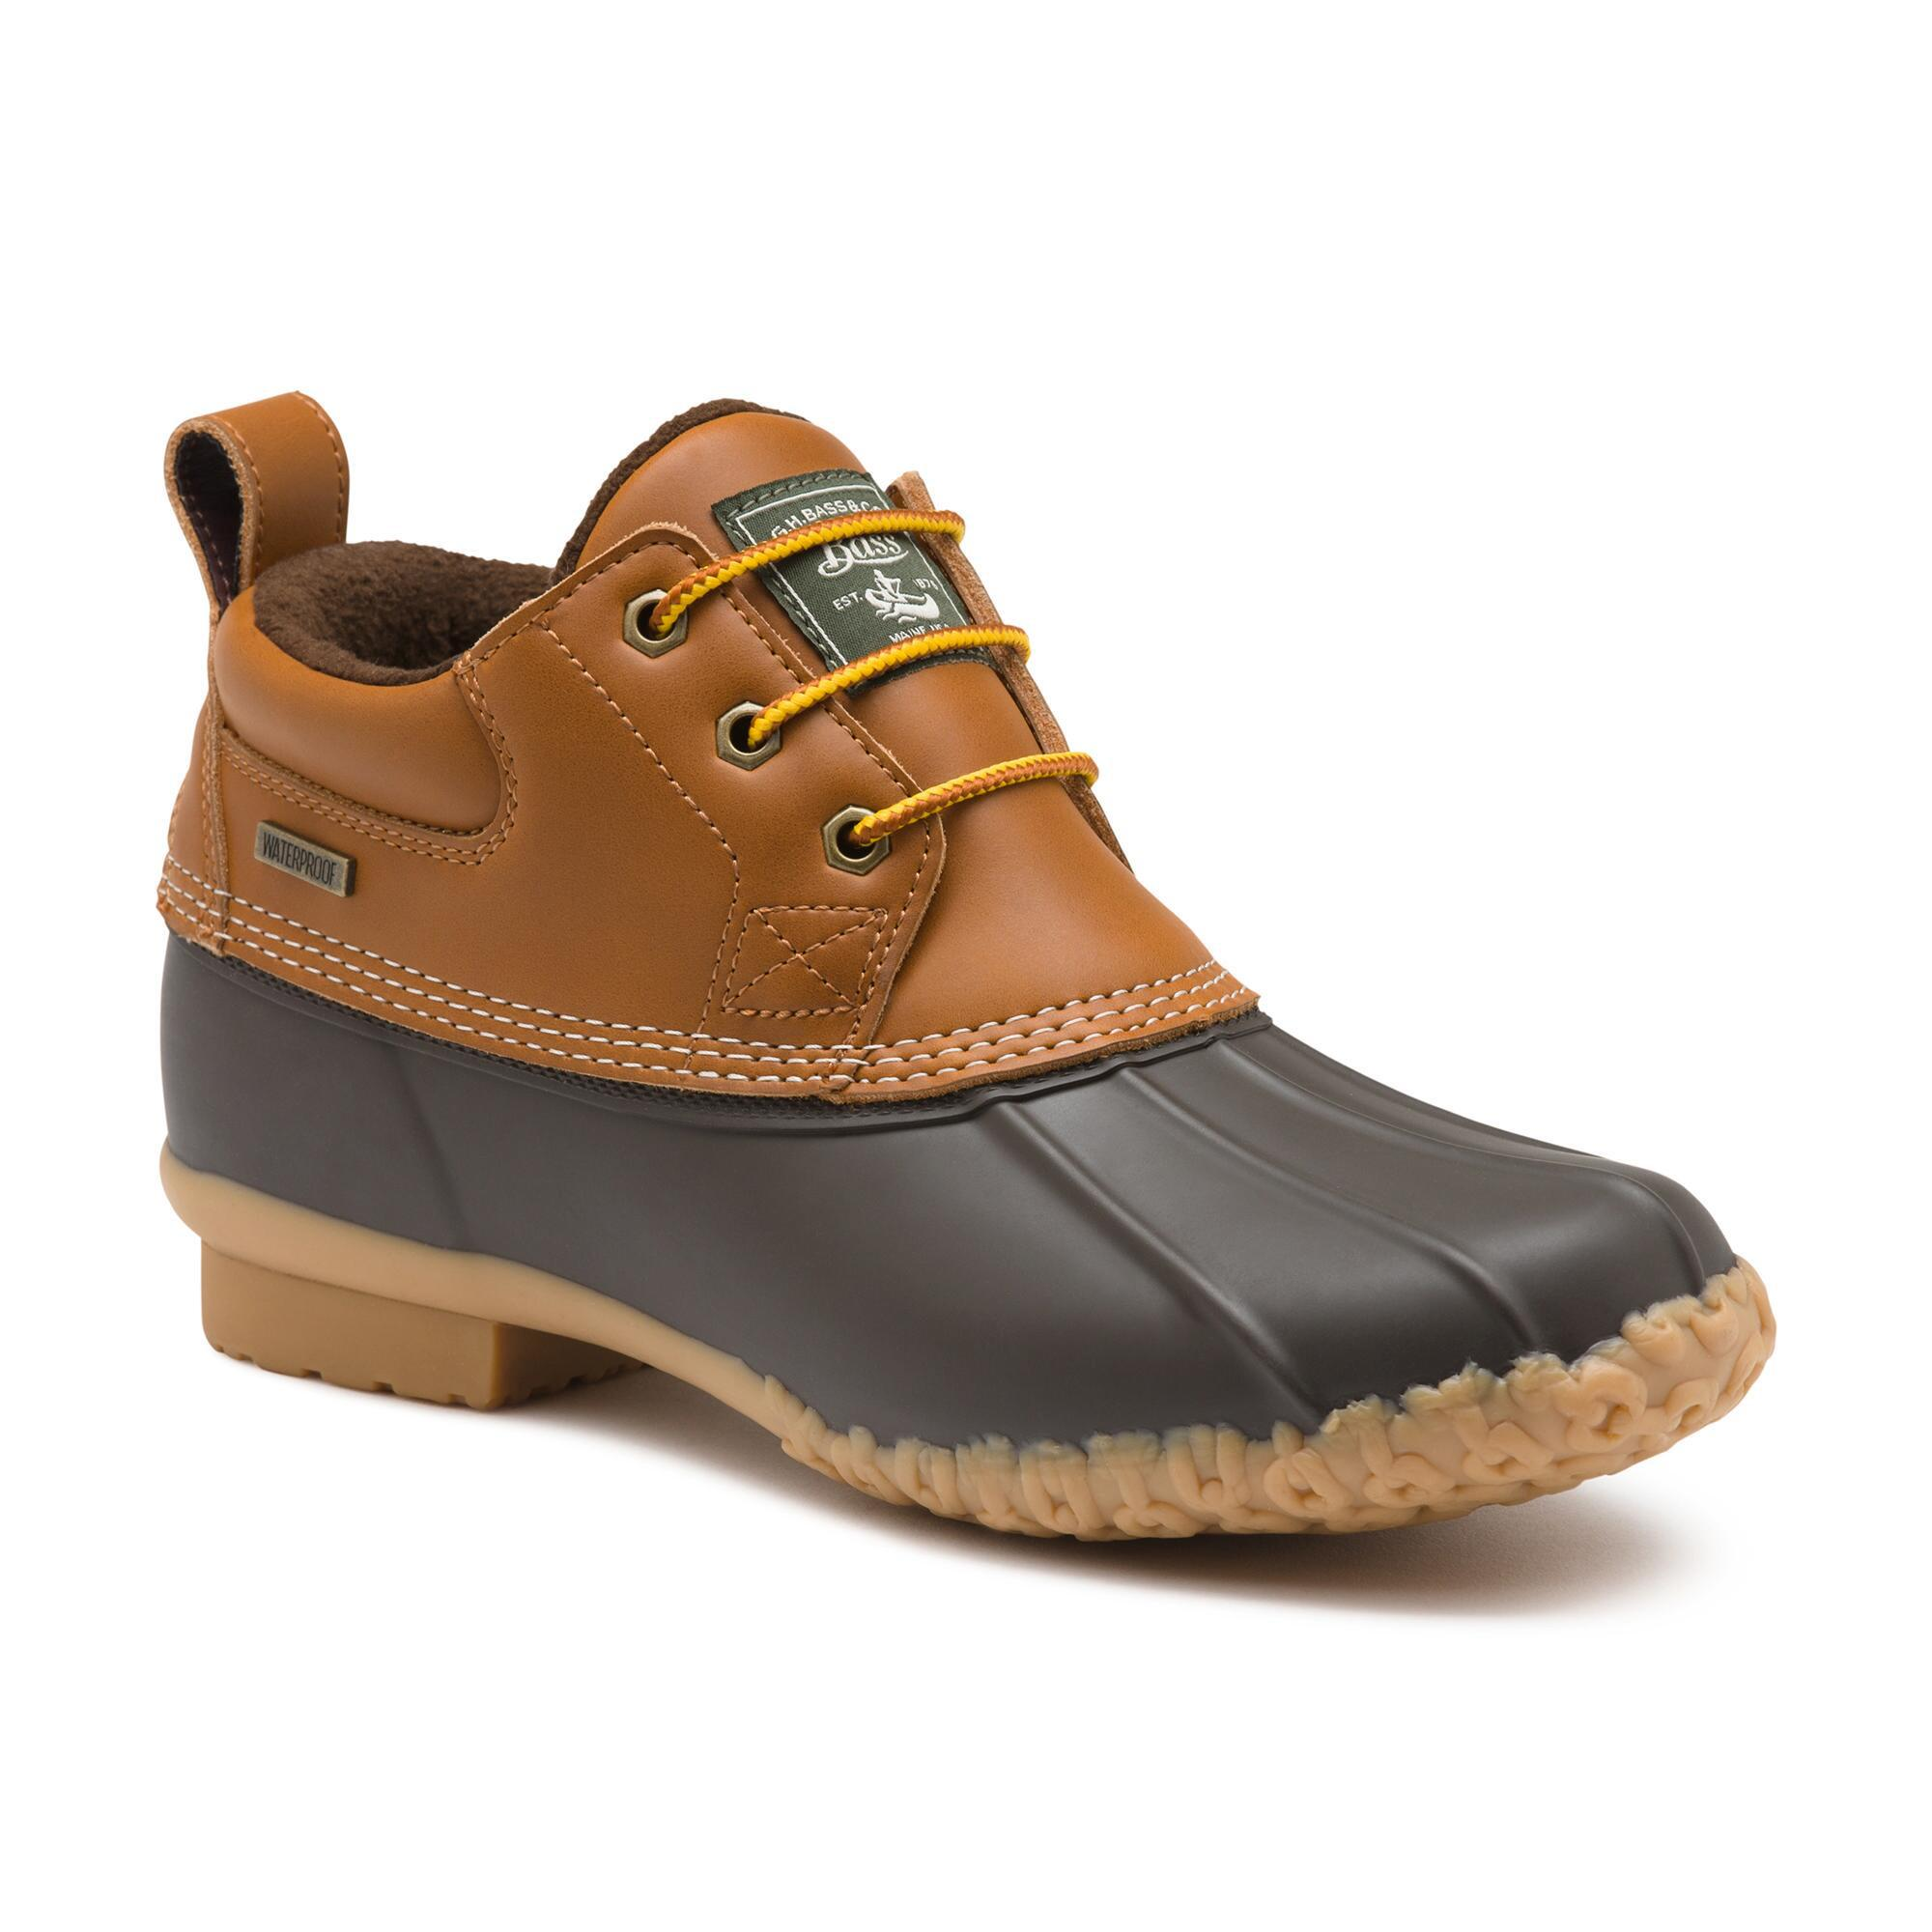 Paul Smith Shoes Price